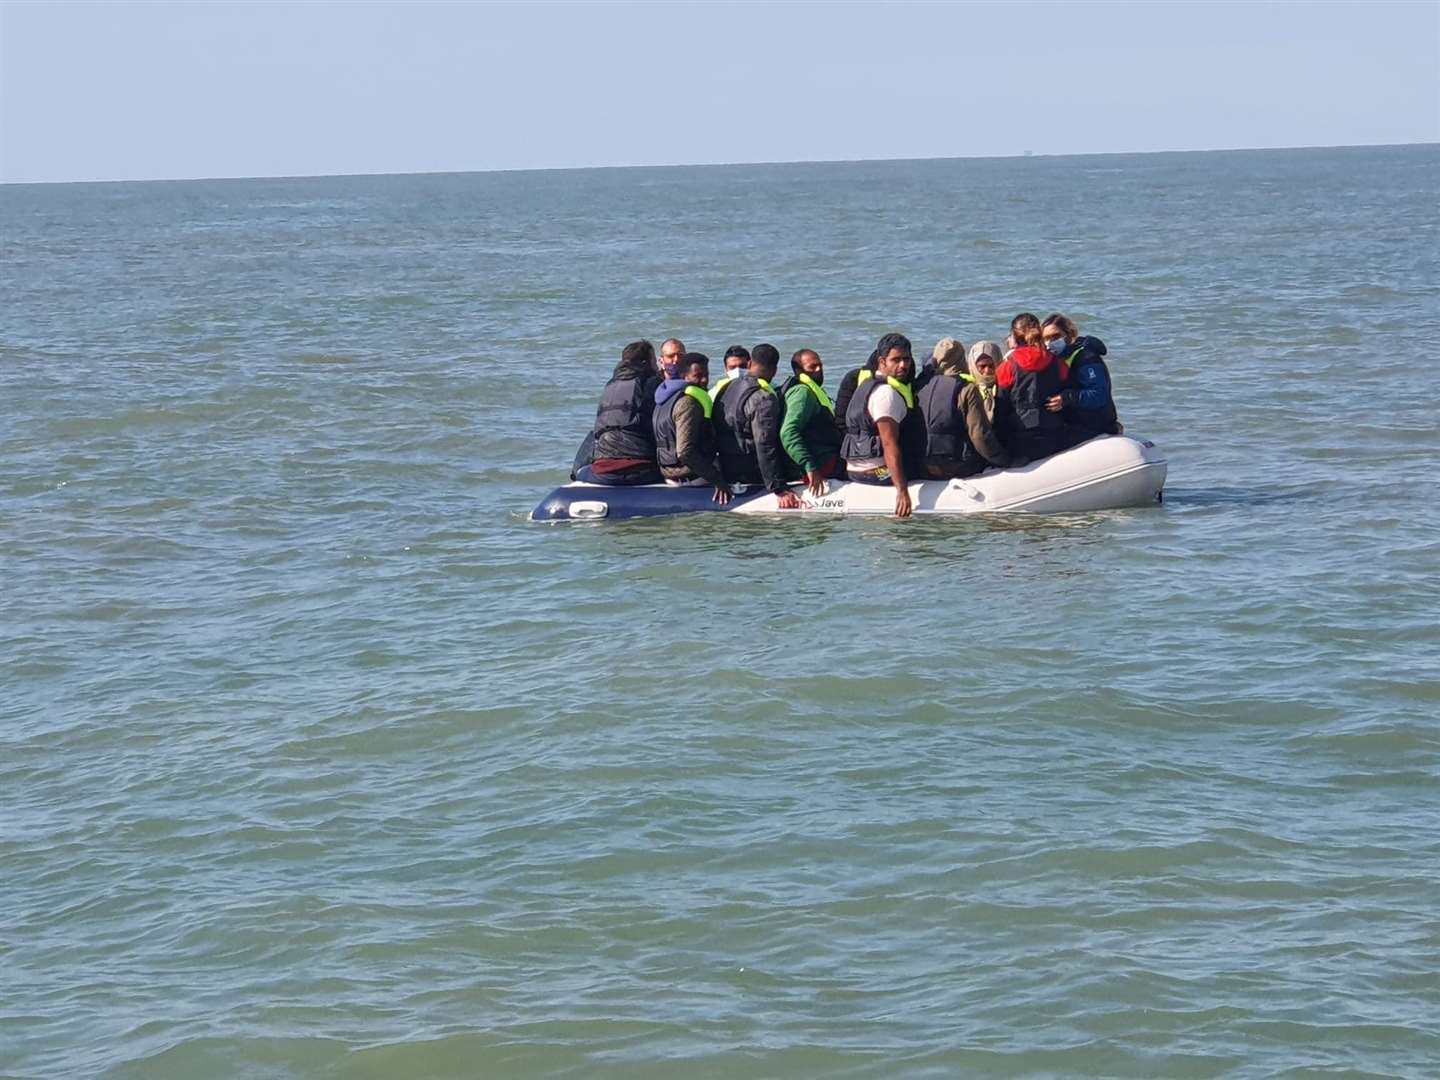 Campaigners saying any attempts to push back boats would be in breach of international law